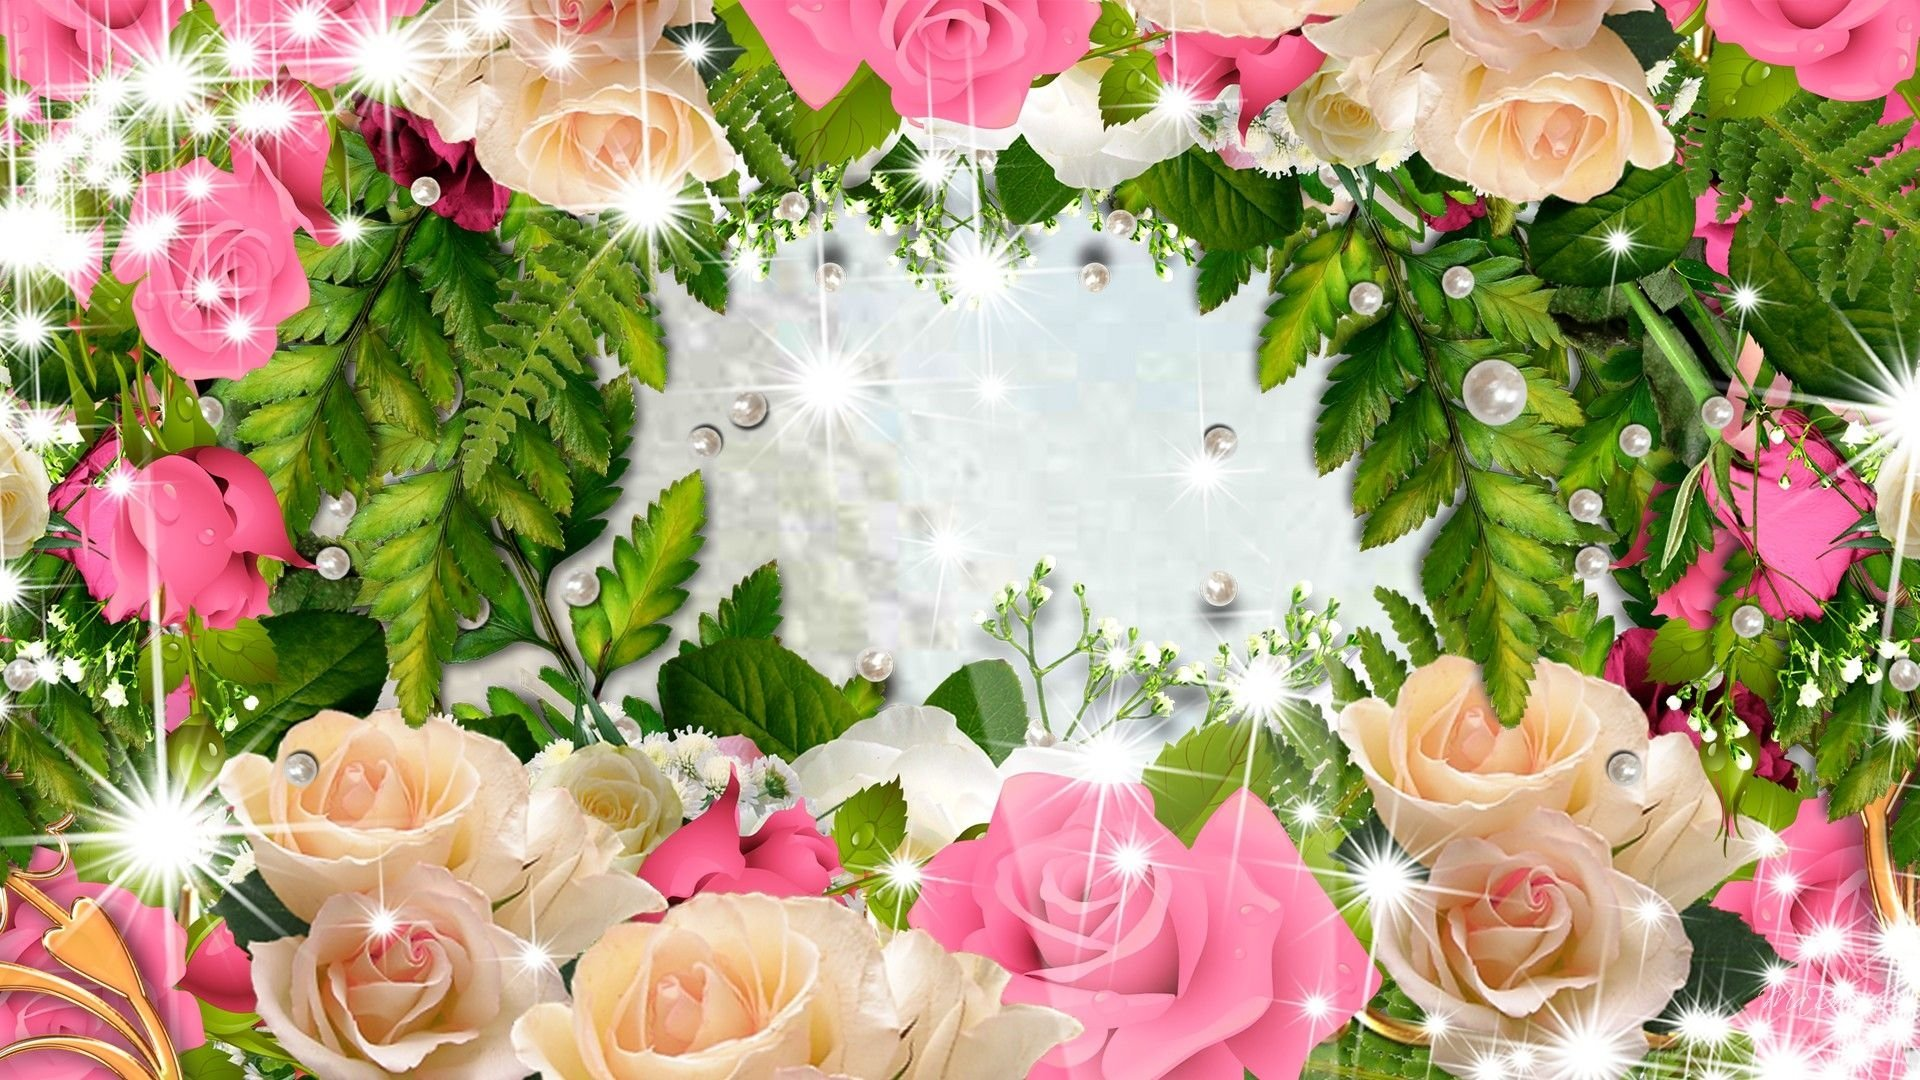 Wallpapers ID:835801